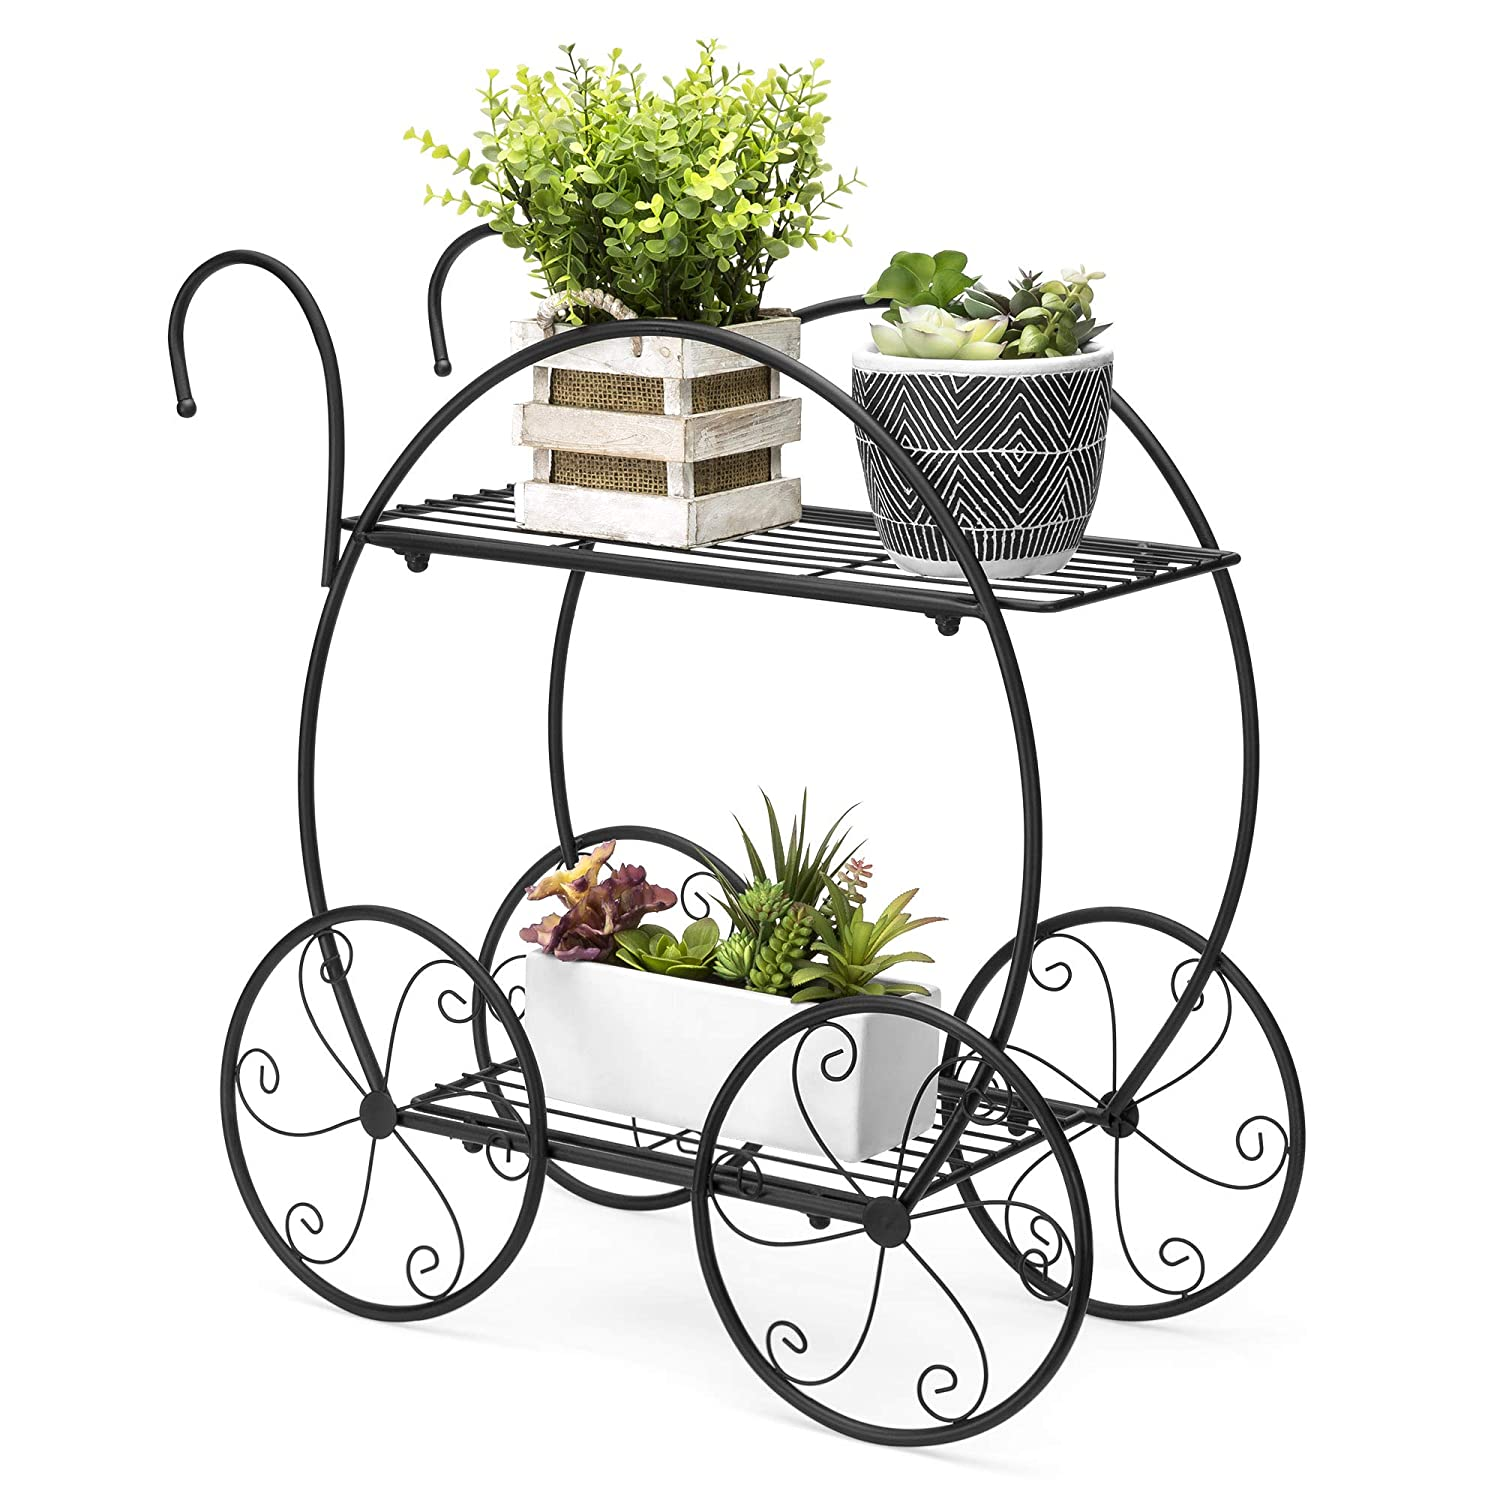 Best Choice Products Patio Planter 2 Tiered Garden Cart Metal Plant Stand Home Decor